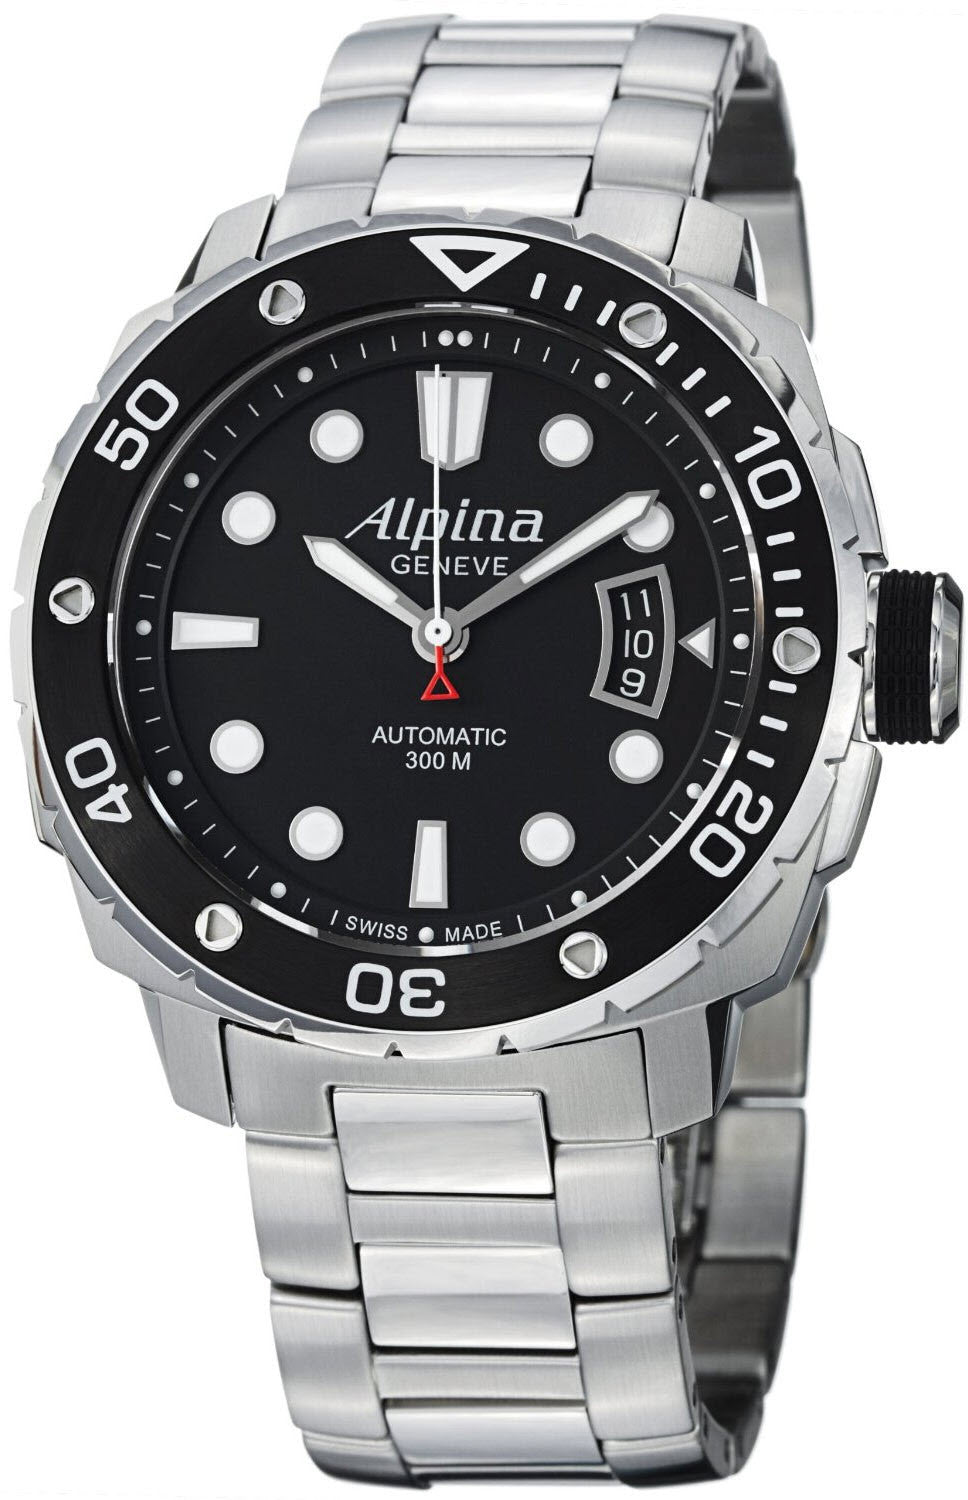 Alpina Watch Seastrong Diver 300 Date